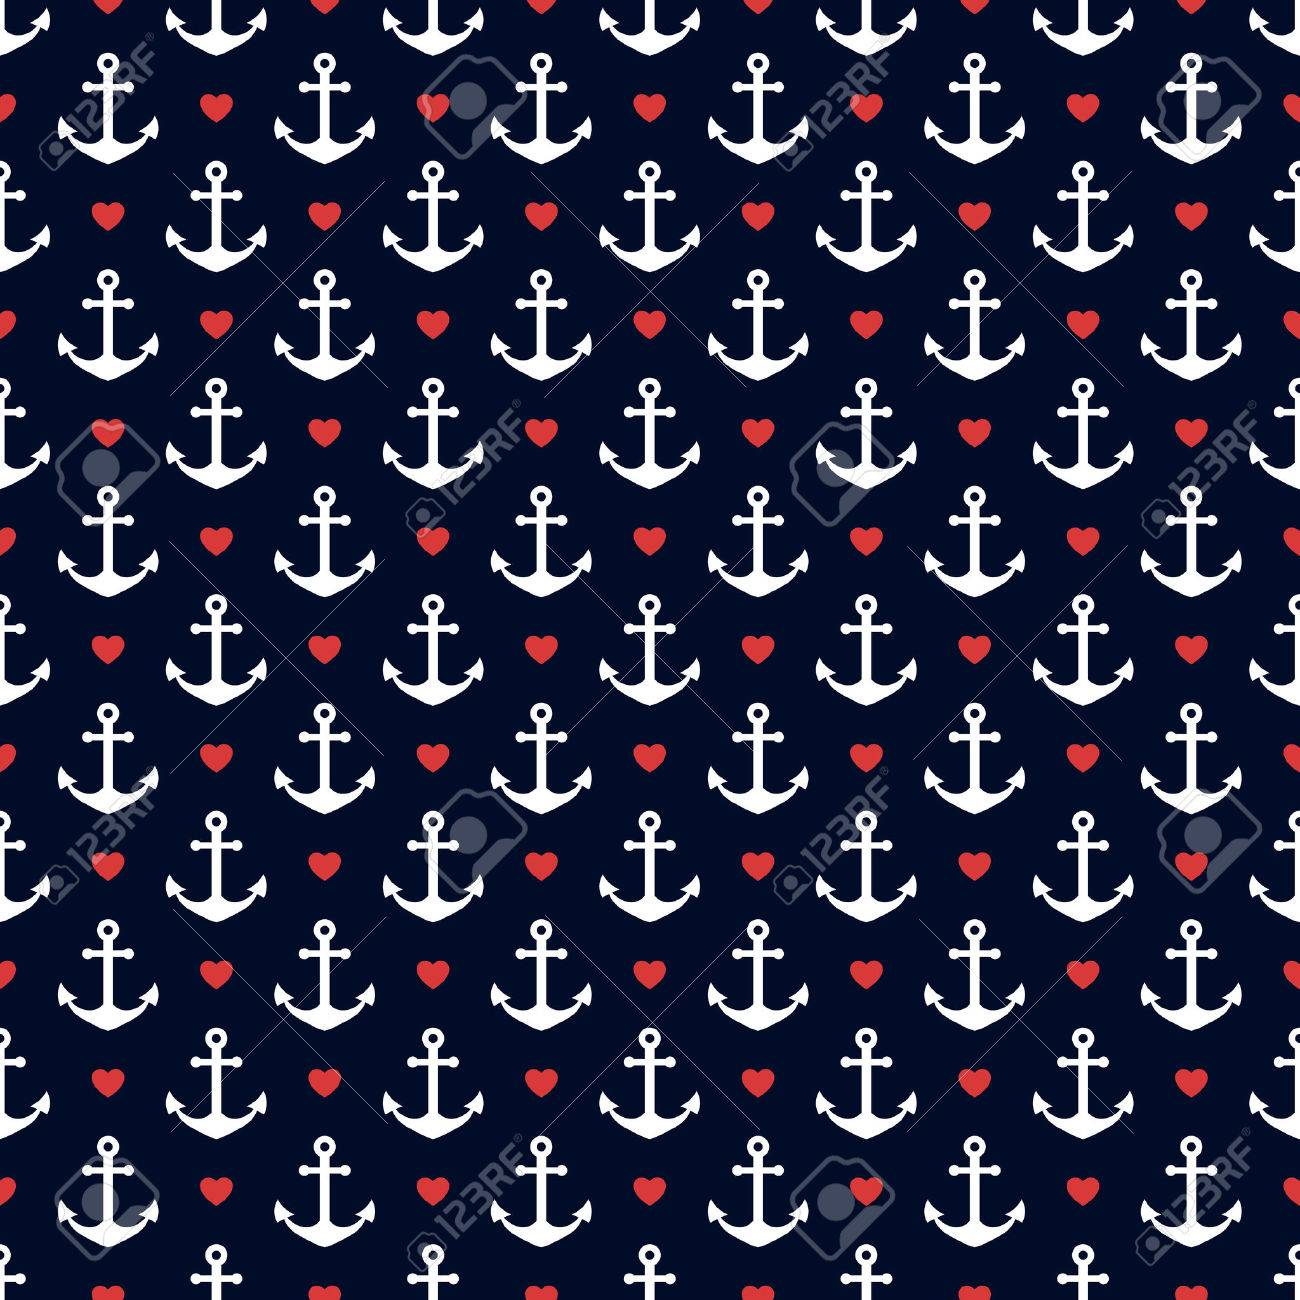 Seamless pattern with anchors and hearts. Nautical theme. Vector background. - 53553930